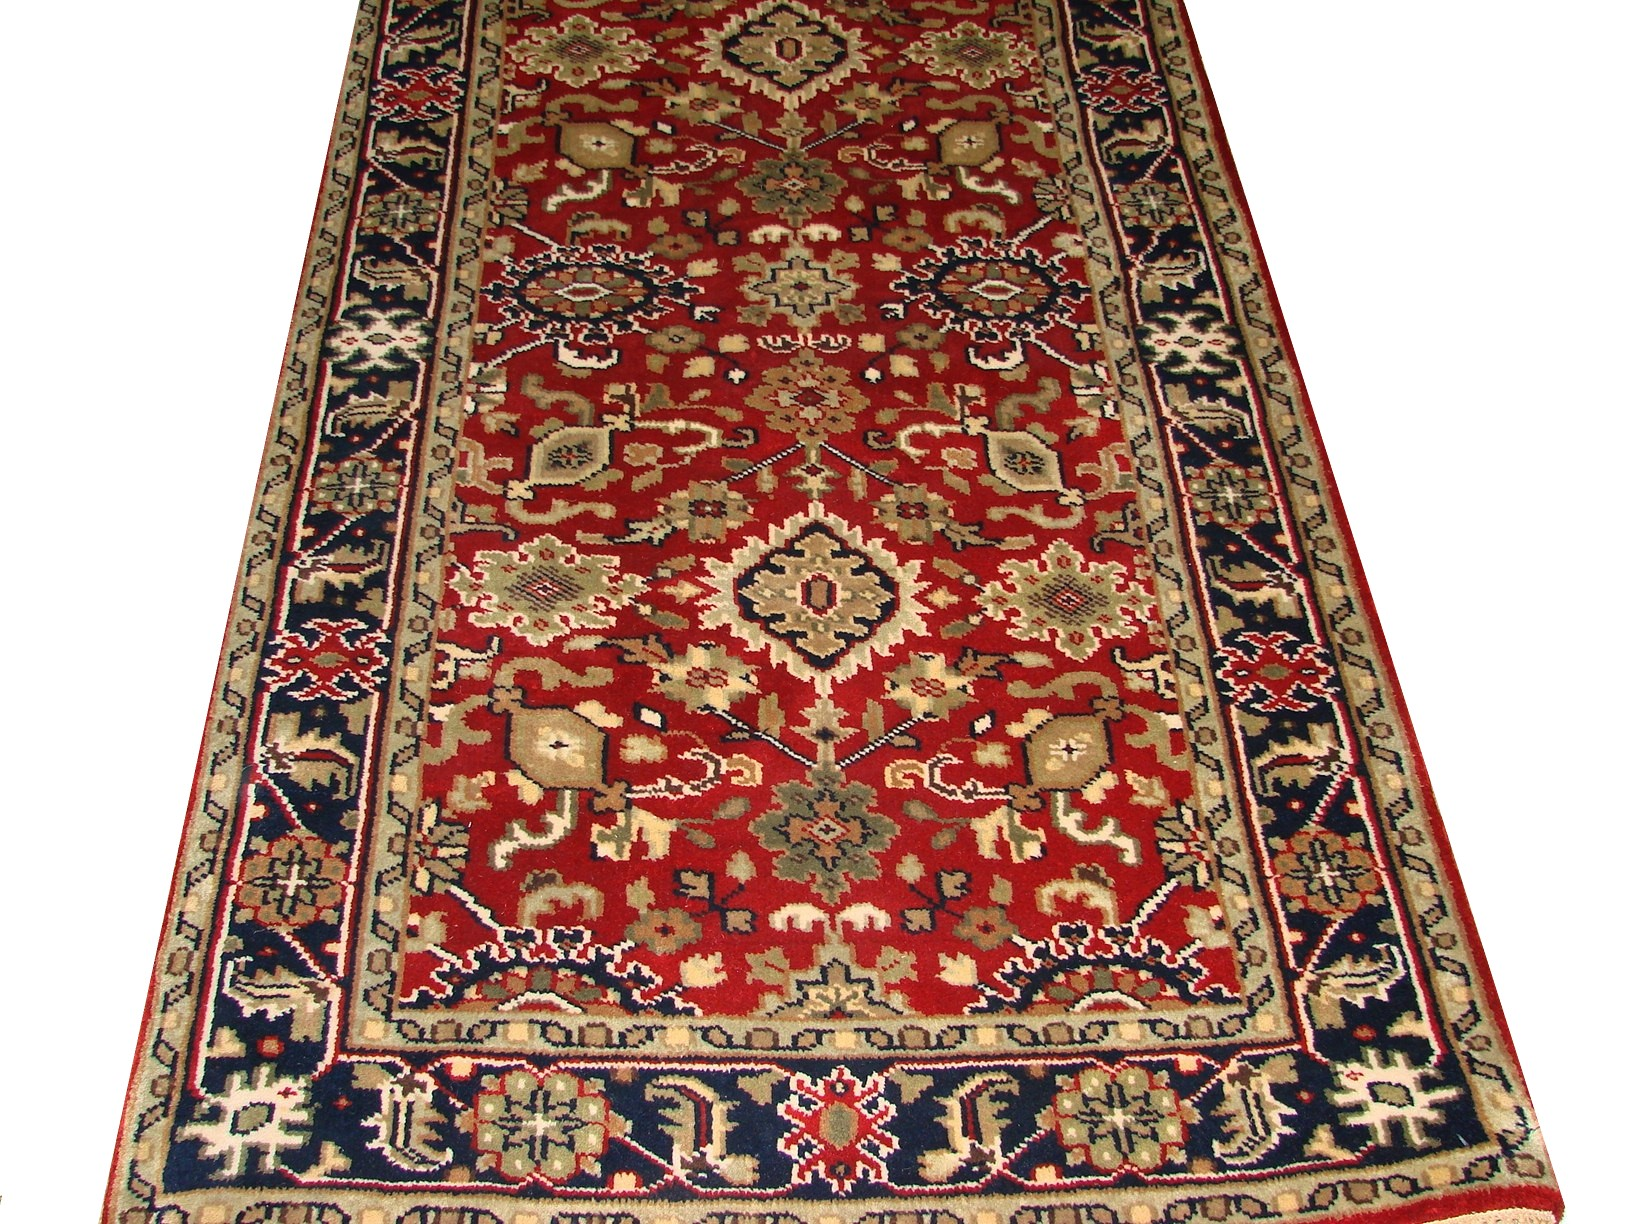 3x5 Traditional Hand Knotted Wool Area Rug - MR15306